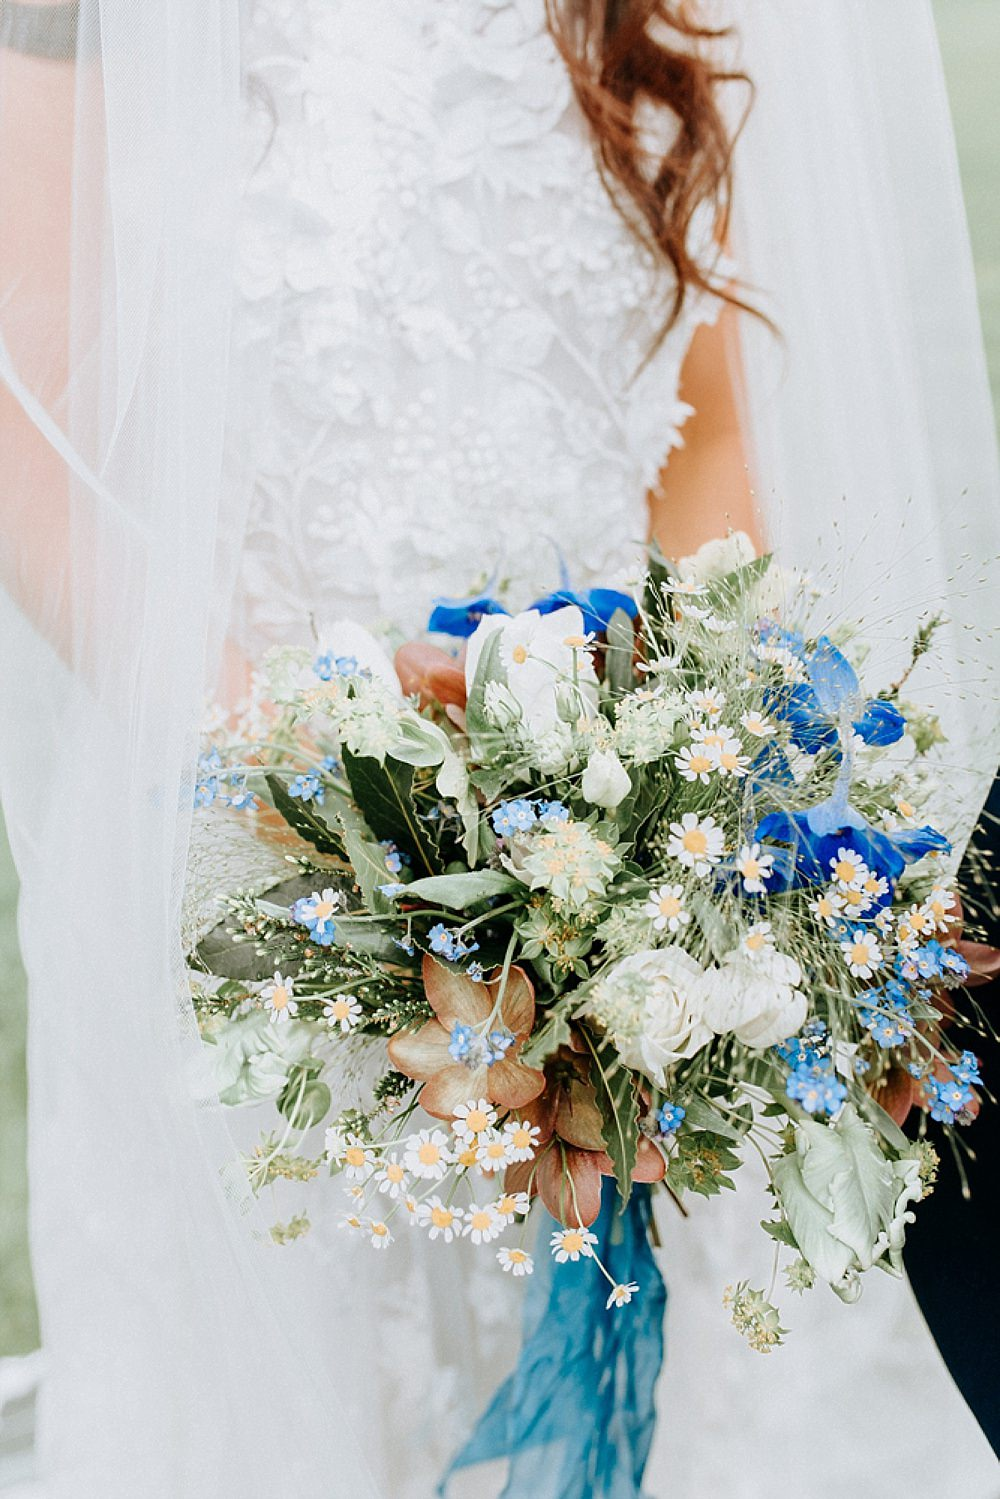 Bouquet Flowers Bride Bridal Ribbon Tulip Daisy Blue Gold Wedding Ideas Ailsa Reeve Photography